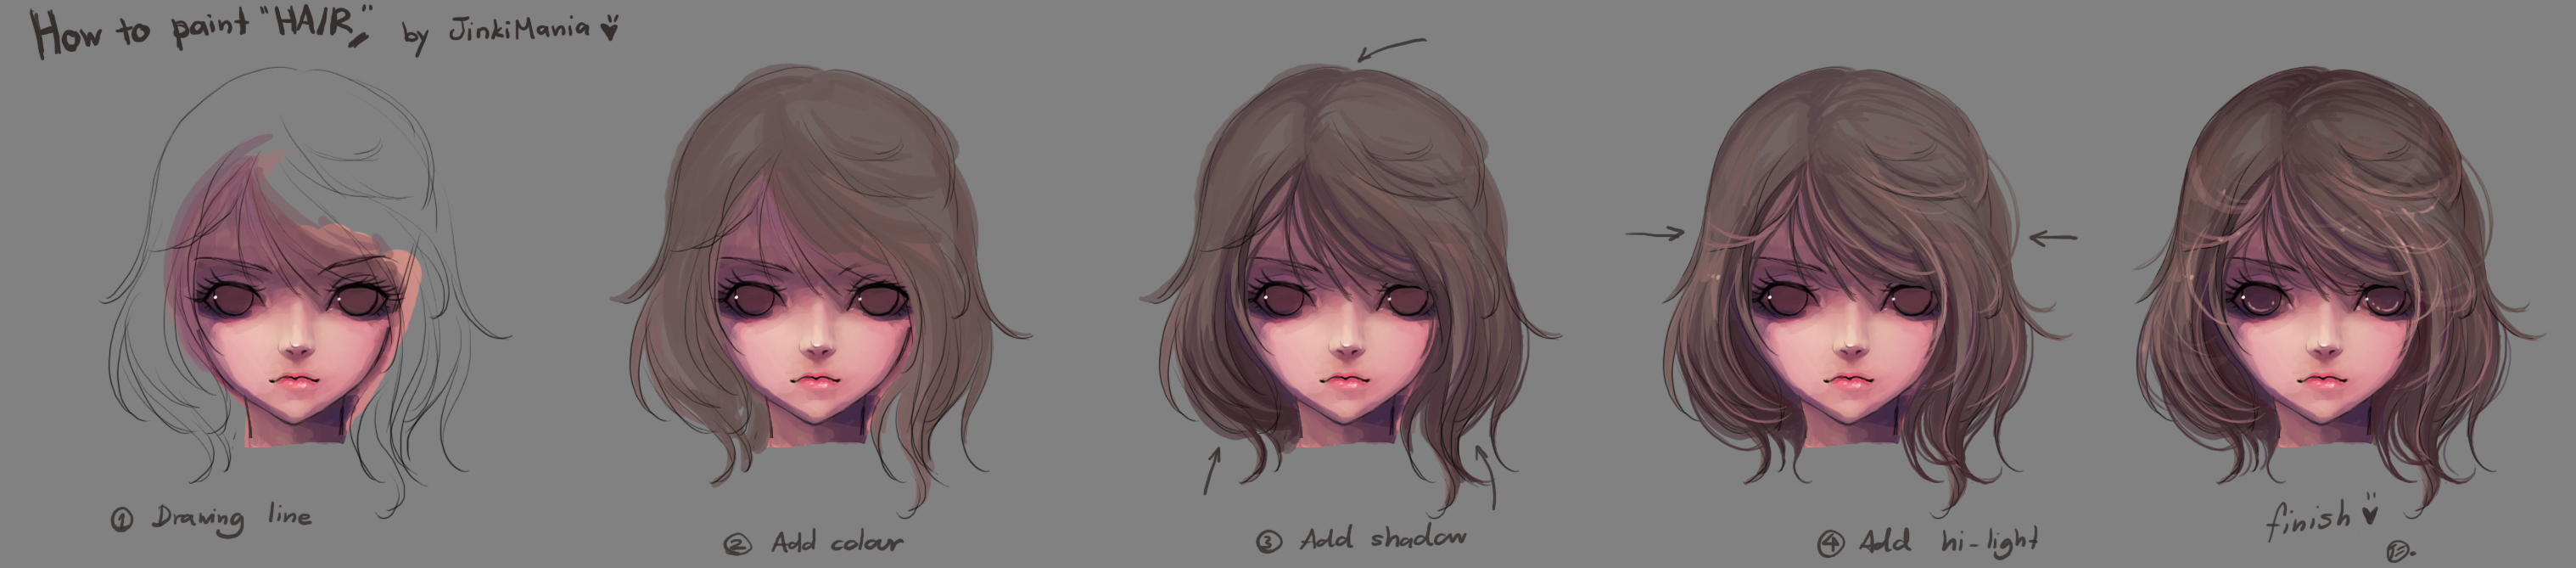 How To Paint Hair By Jinkimania On Deviantart